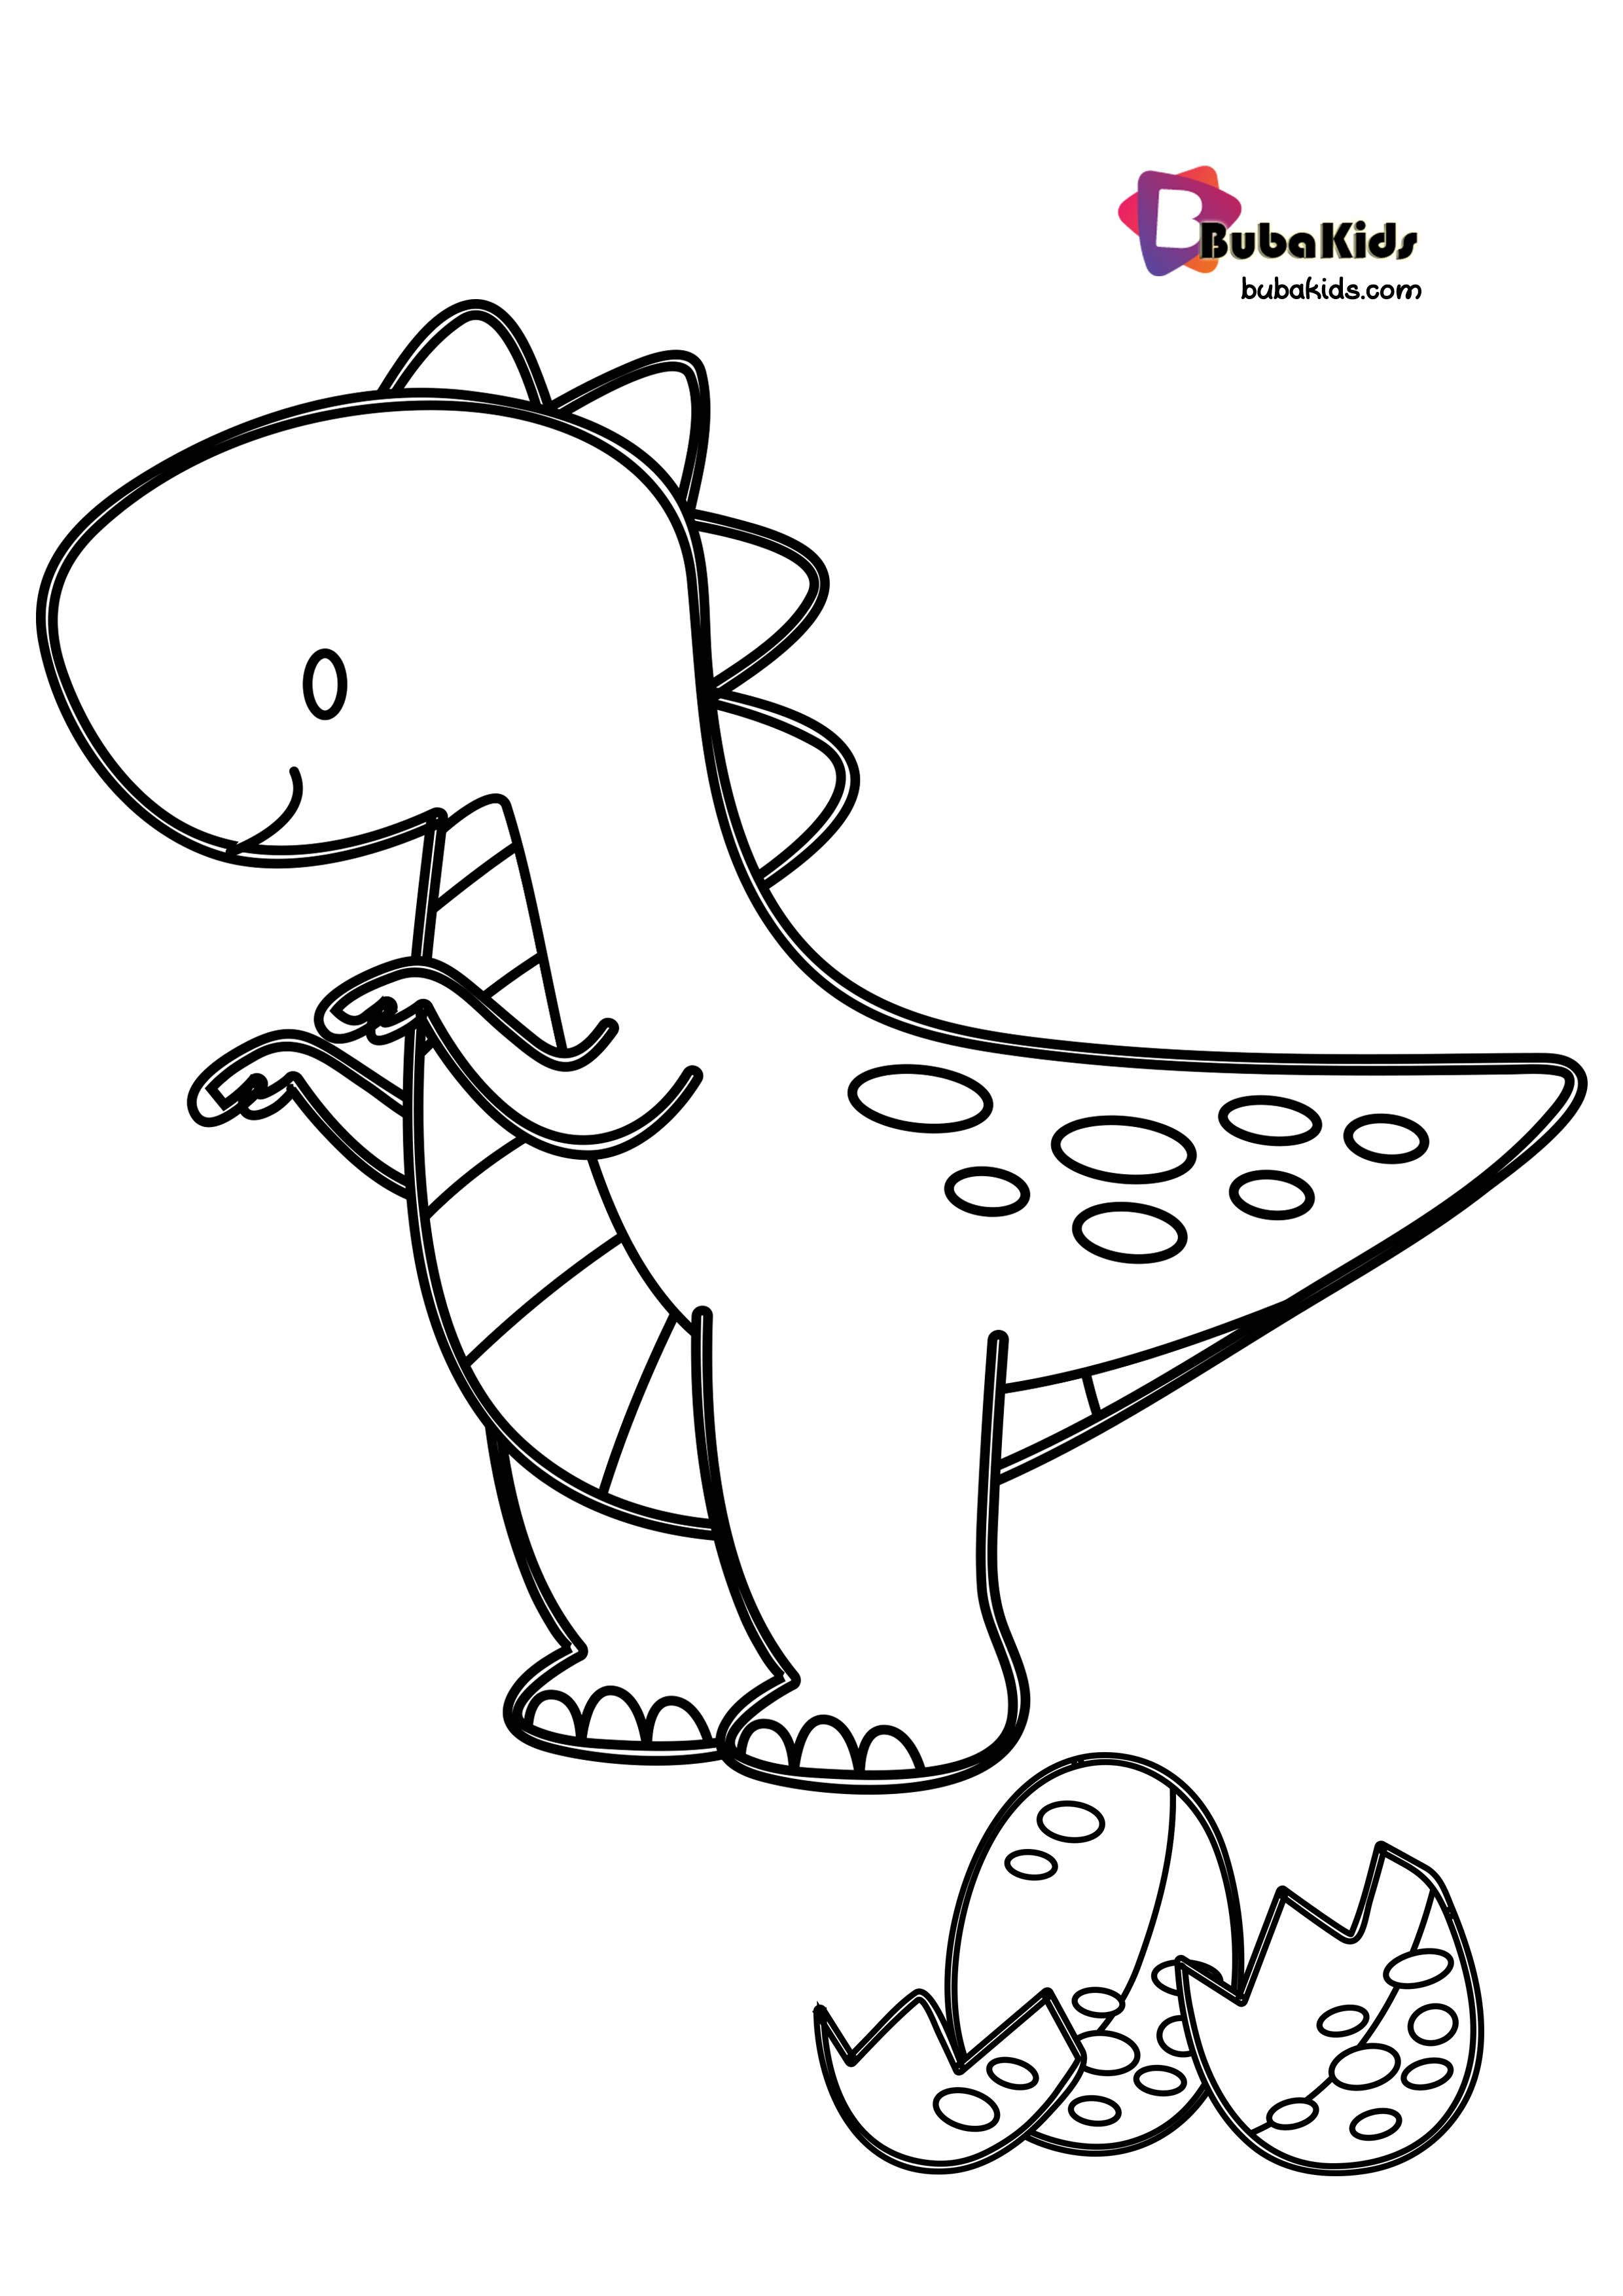 Baby TRex Coloring Page With Egg dinosaurscoloringpage